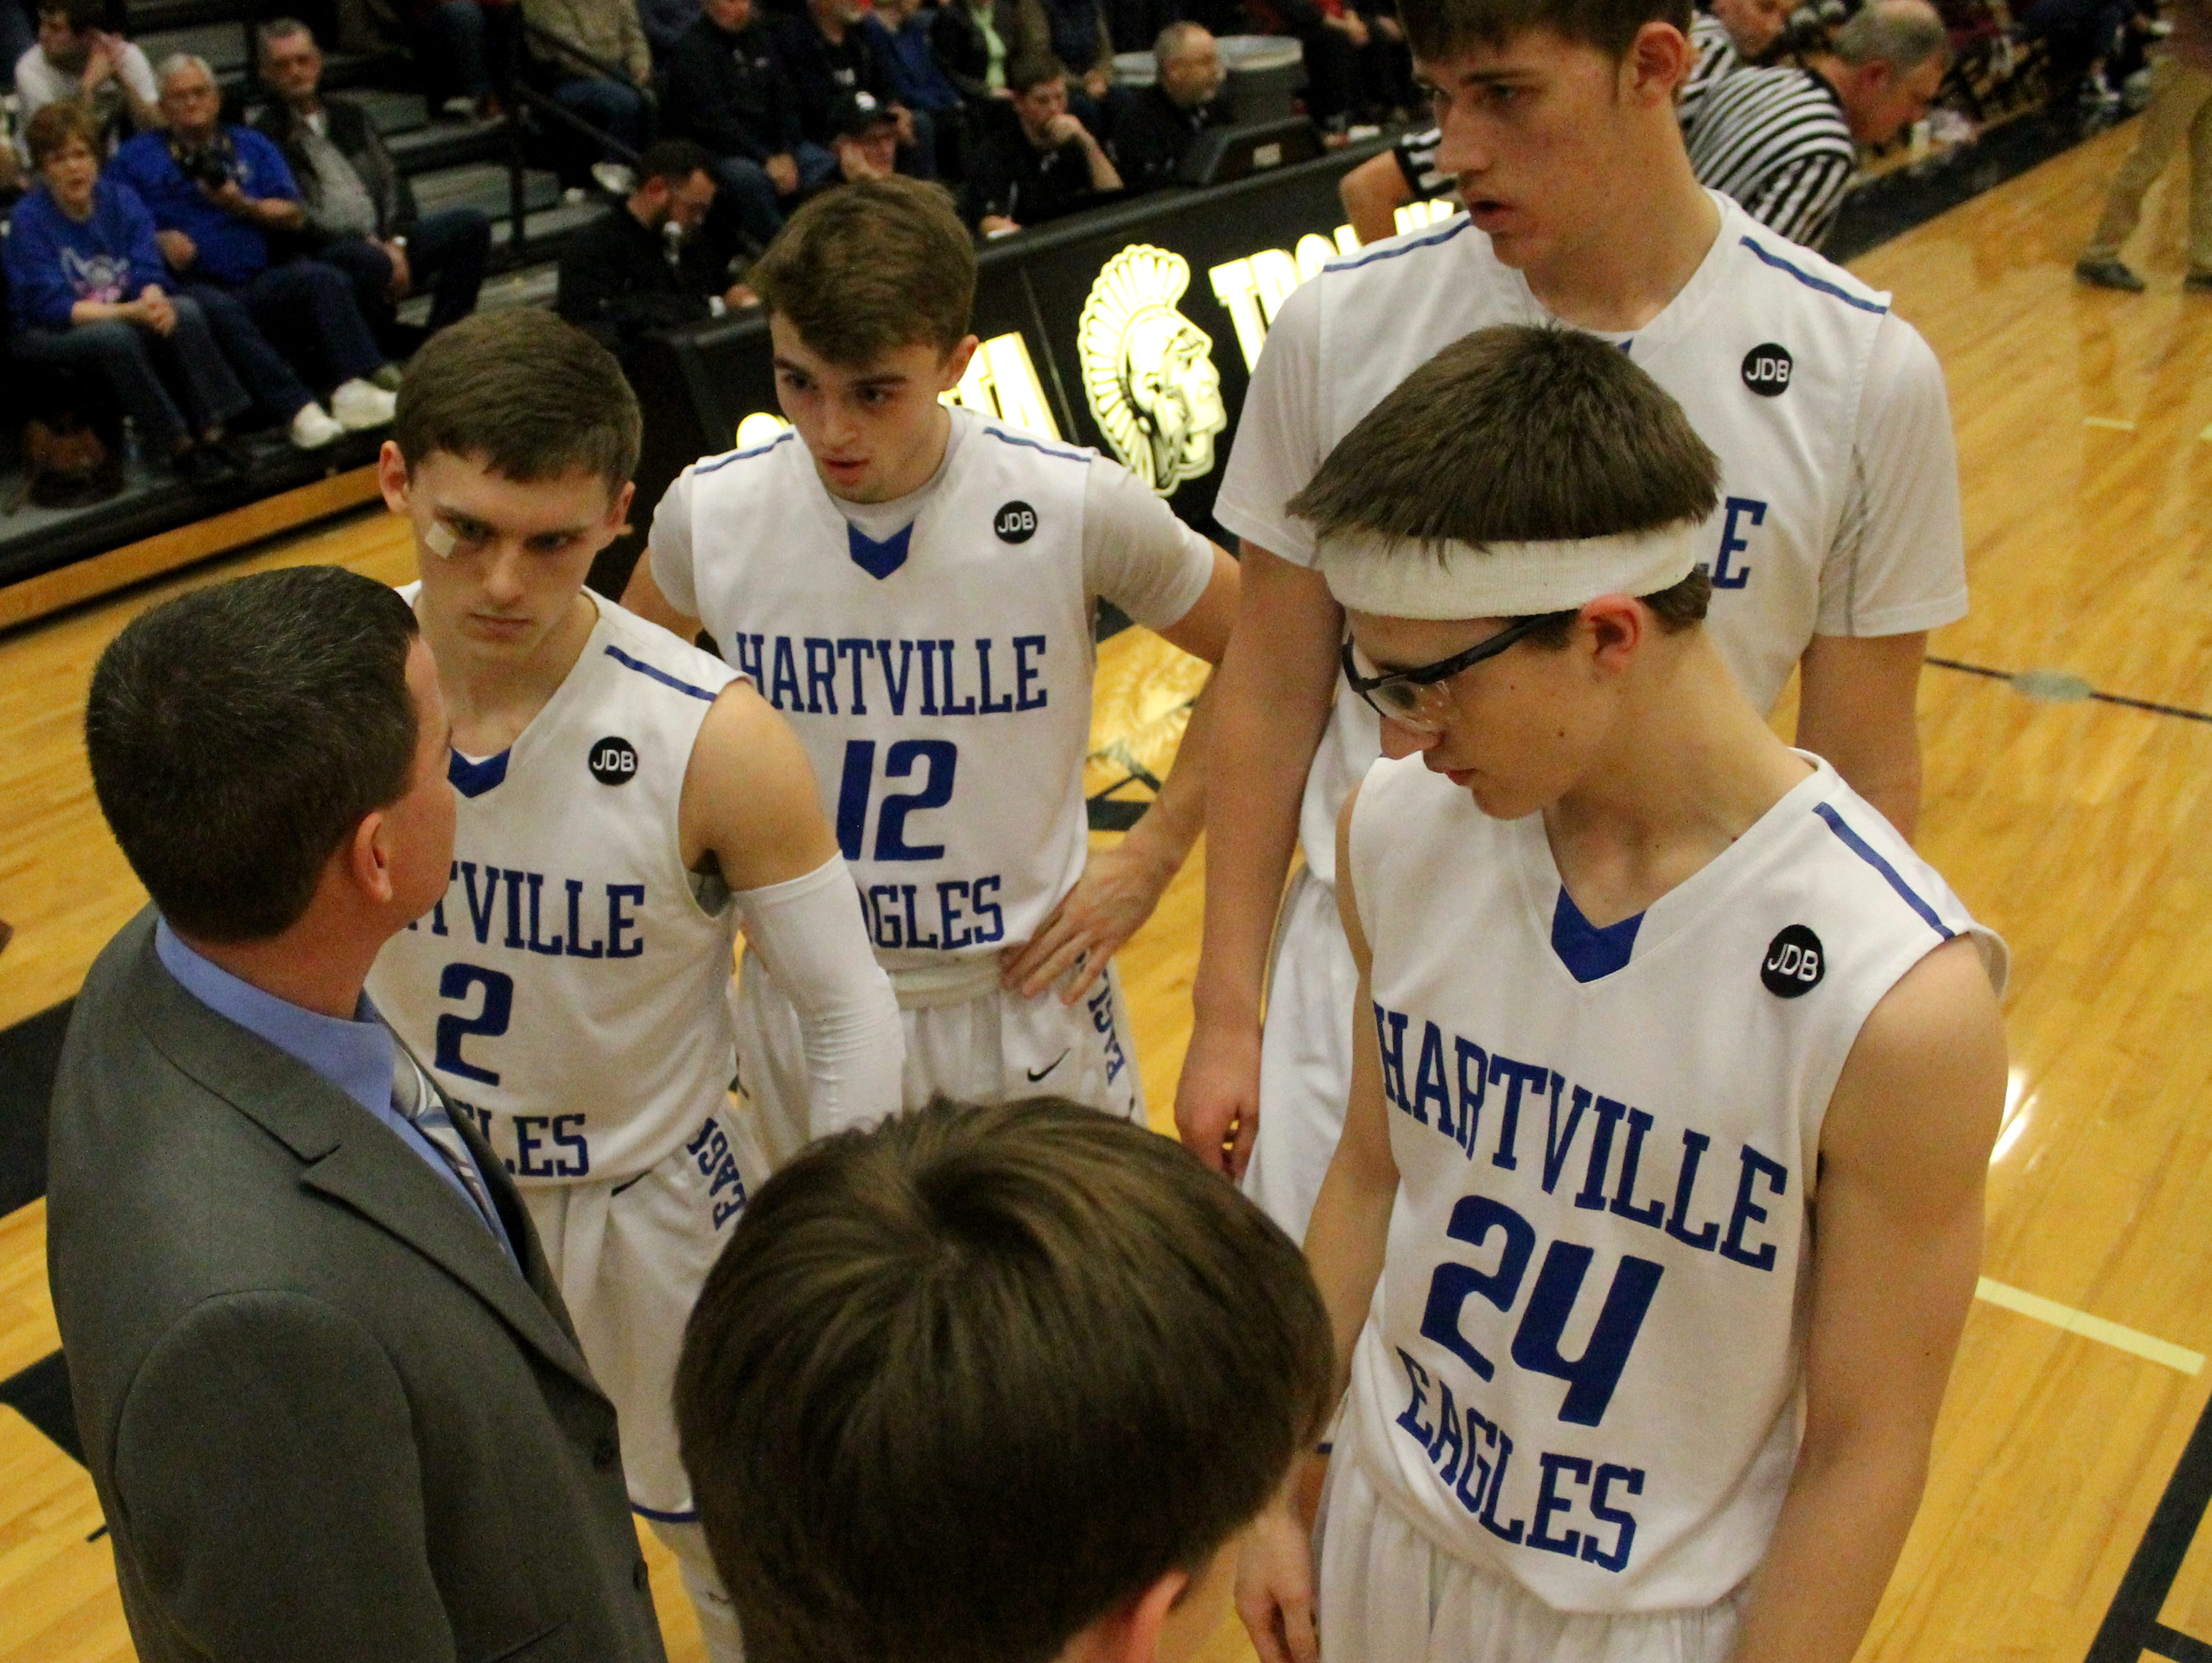 The Hartville High School boys basketball starting five gathers around coach Brett Reed moments before playing the 2017 Class 2 District 4 championship game against Mansfield at Sparta High School on Friday, Feb. 24, 2017. Pictured, from left, Reed, Dune Piper, Deric Jones, Cody Kelley and Wyatt Ward.